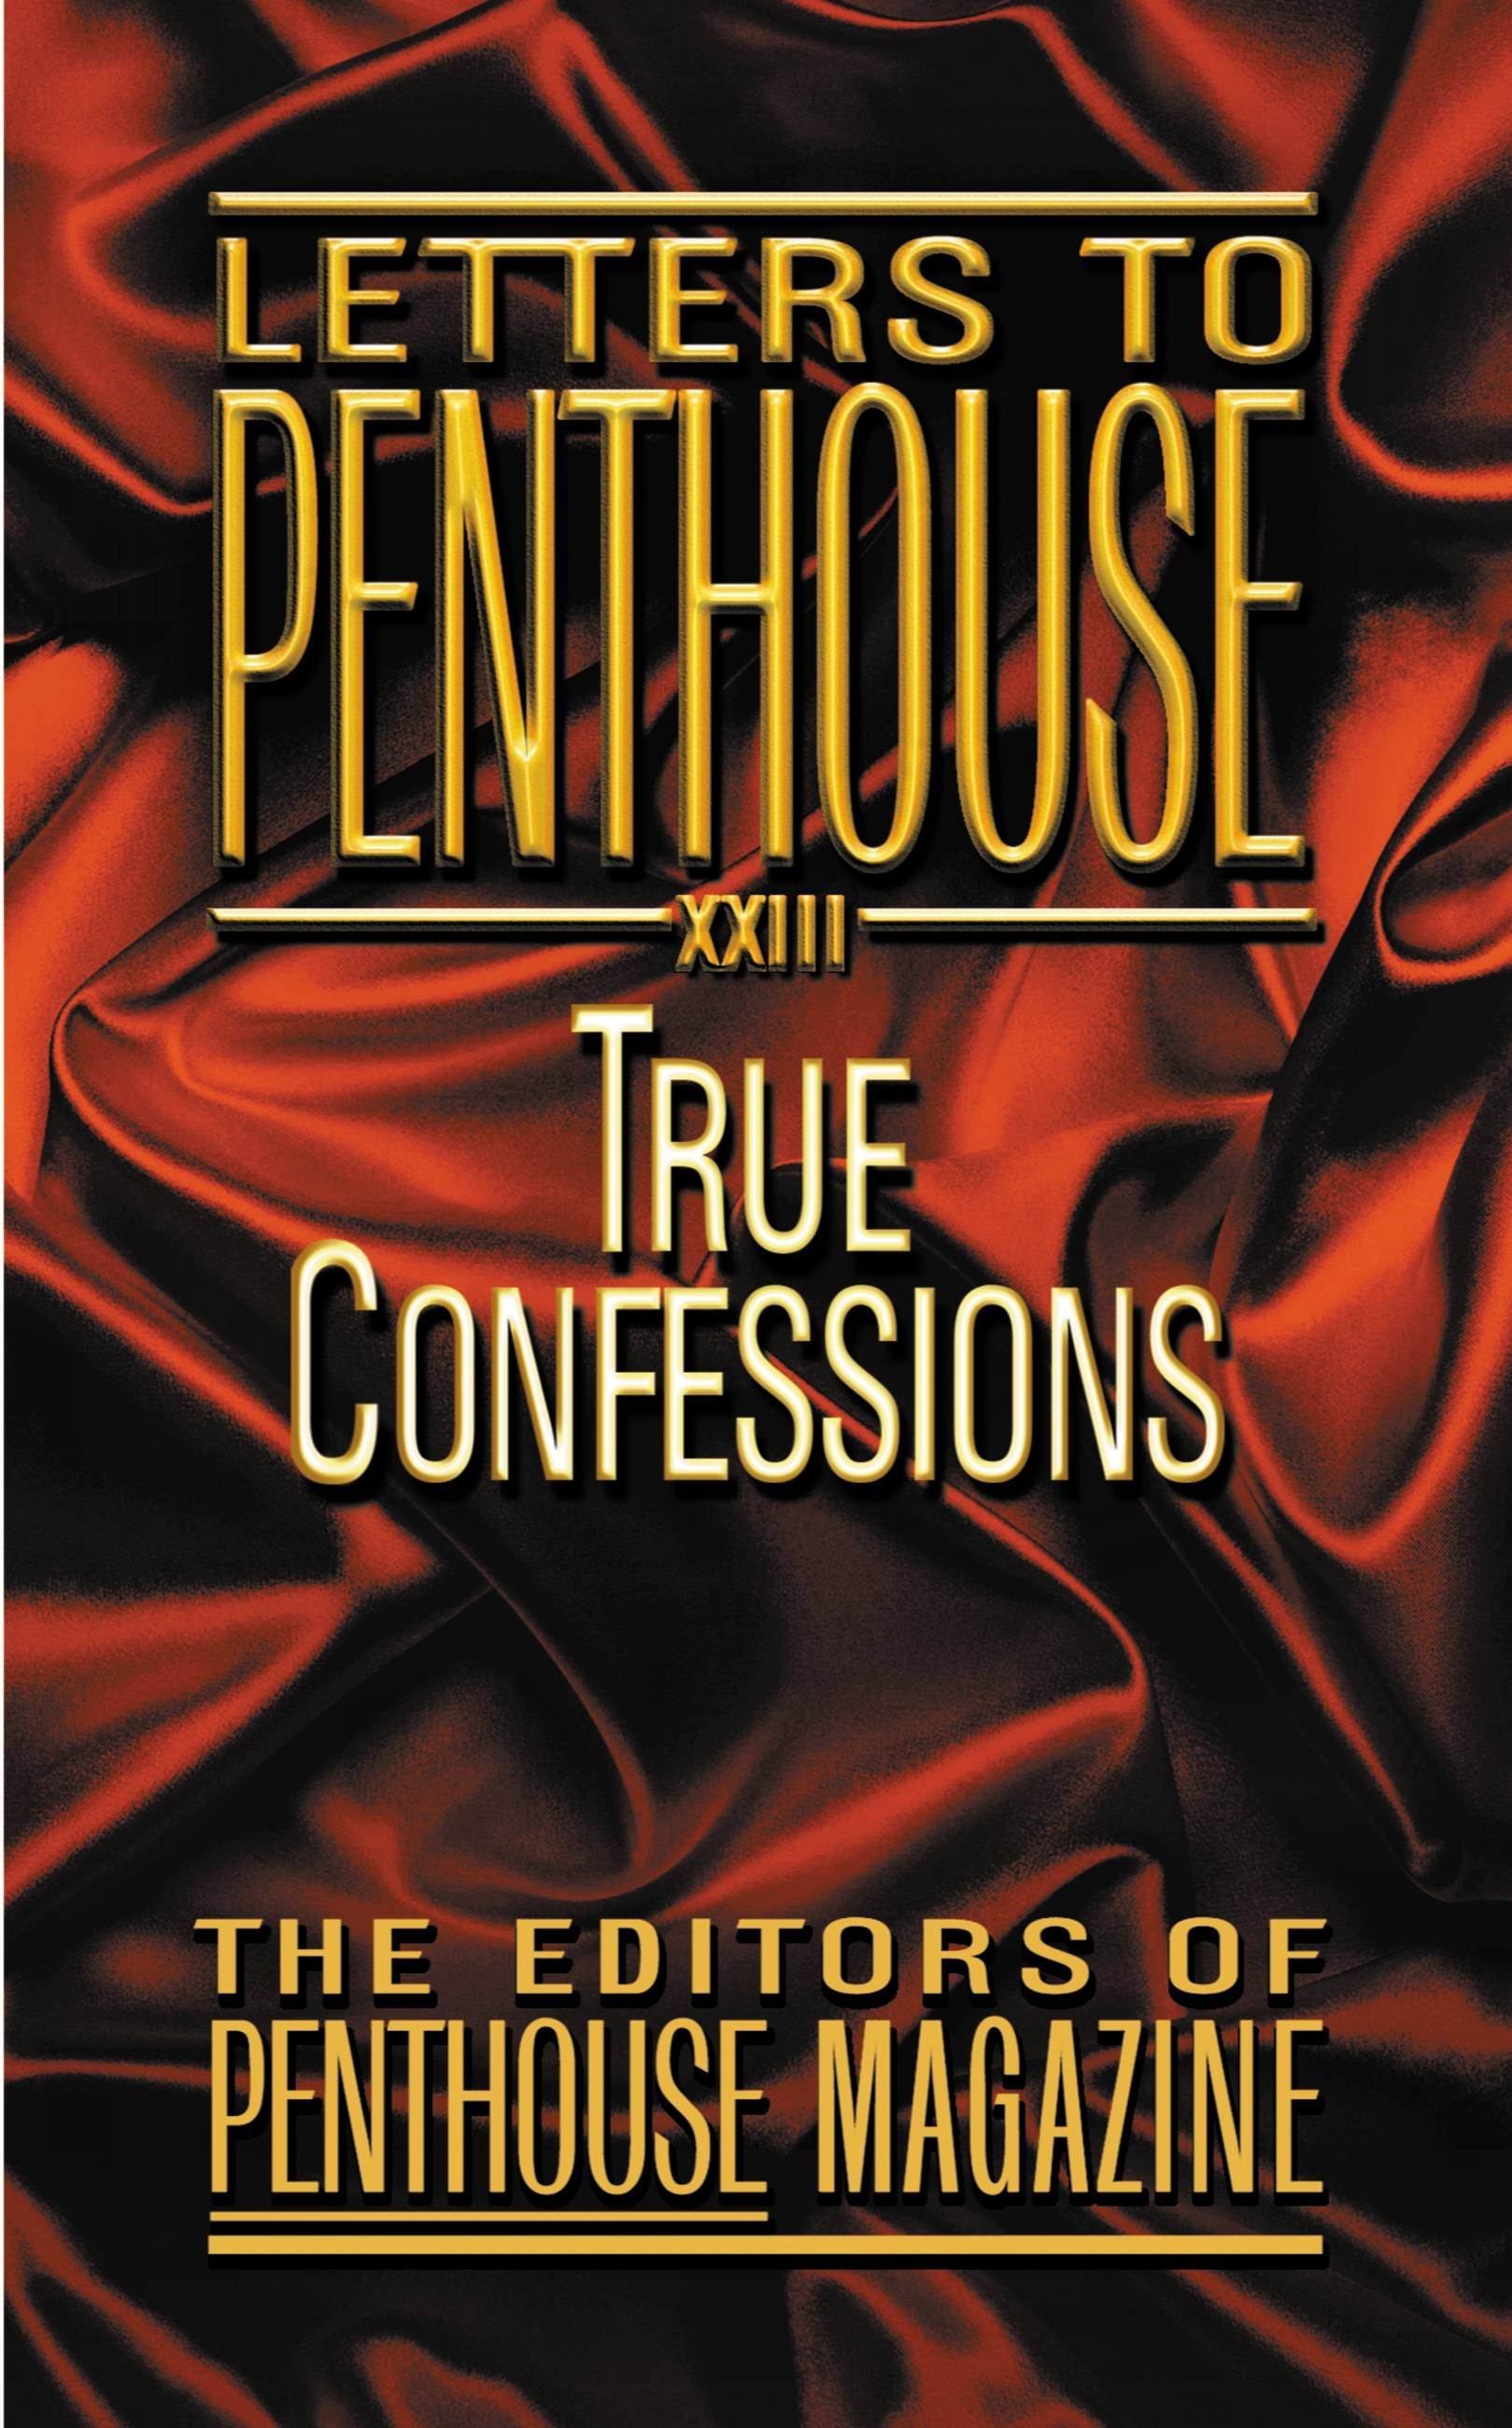 Letters to Penthouse XXIII